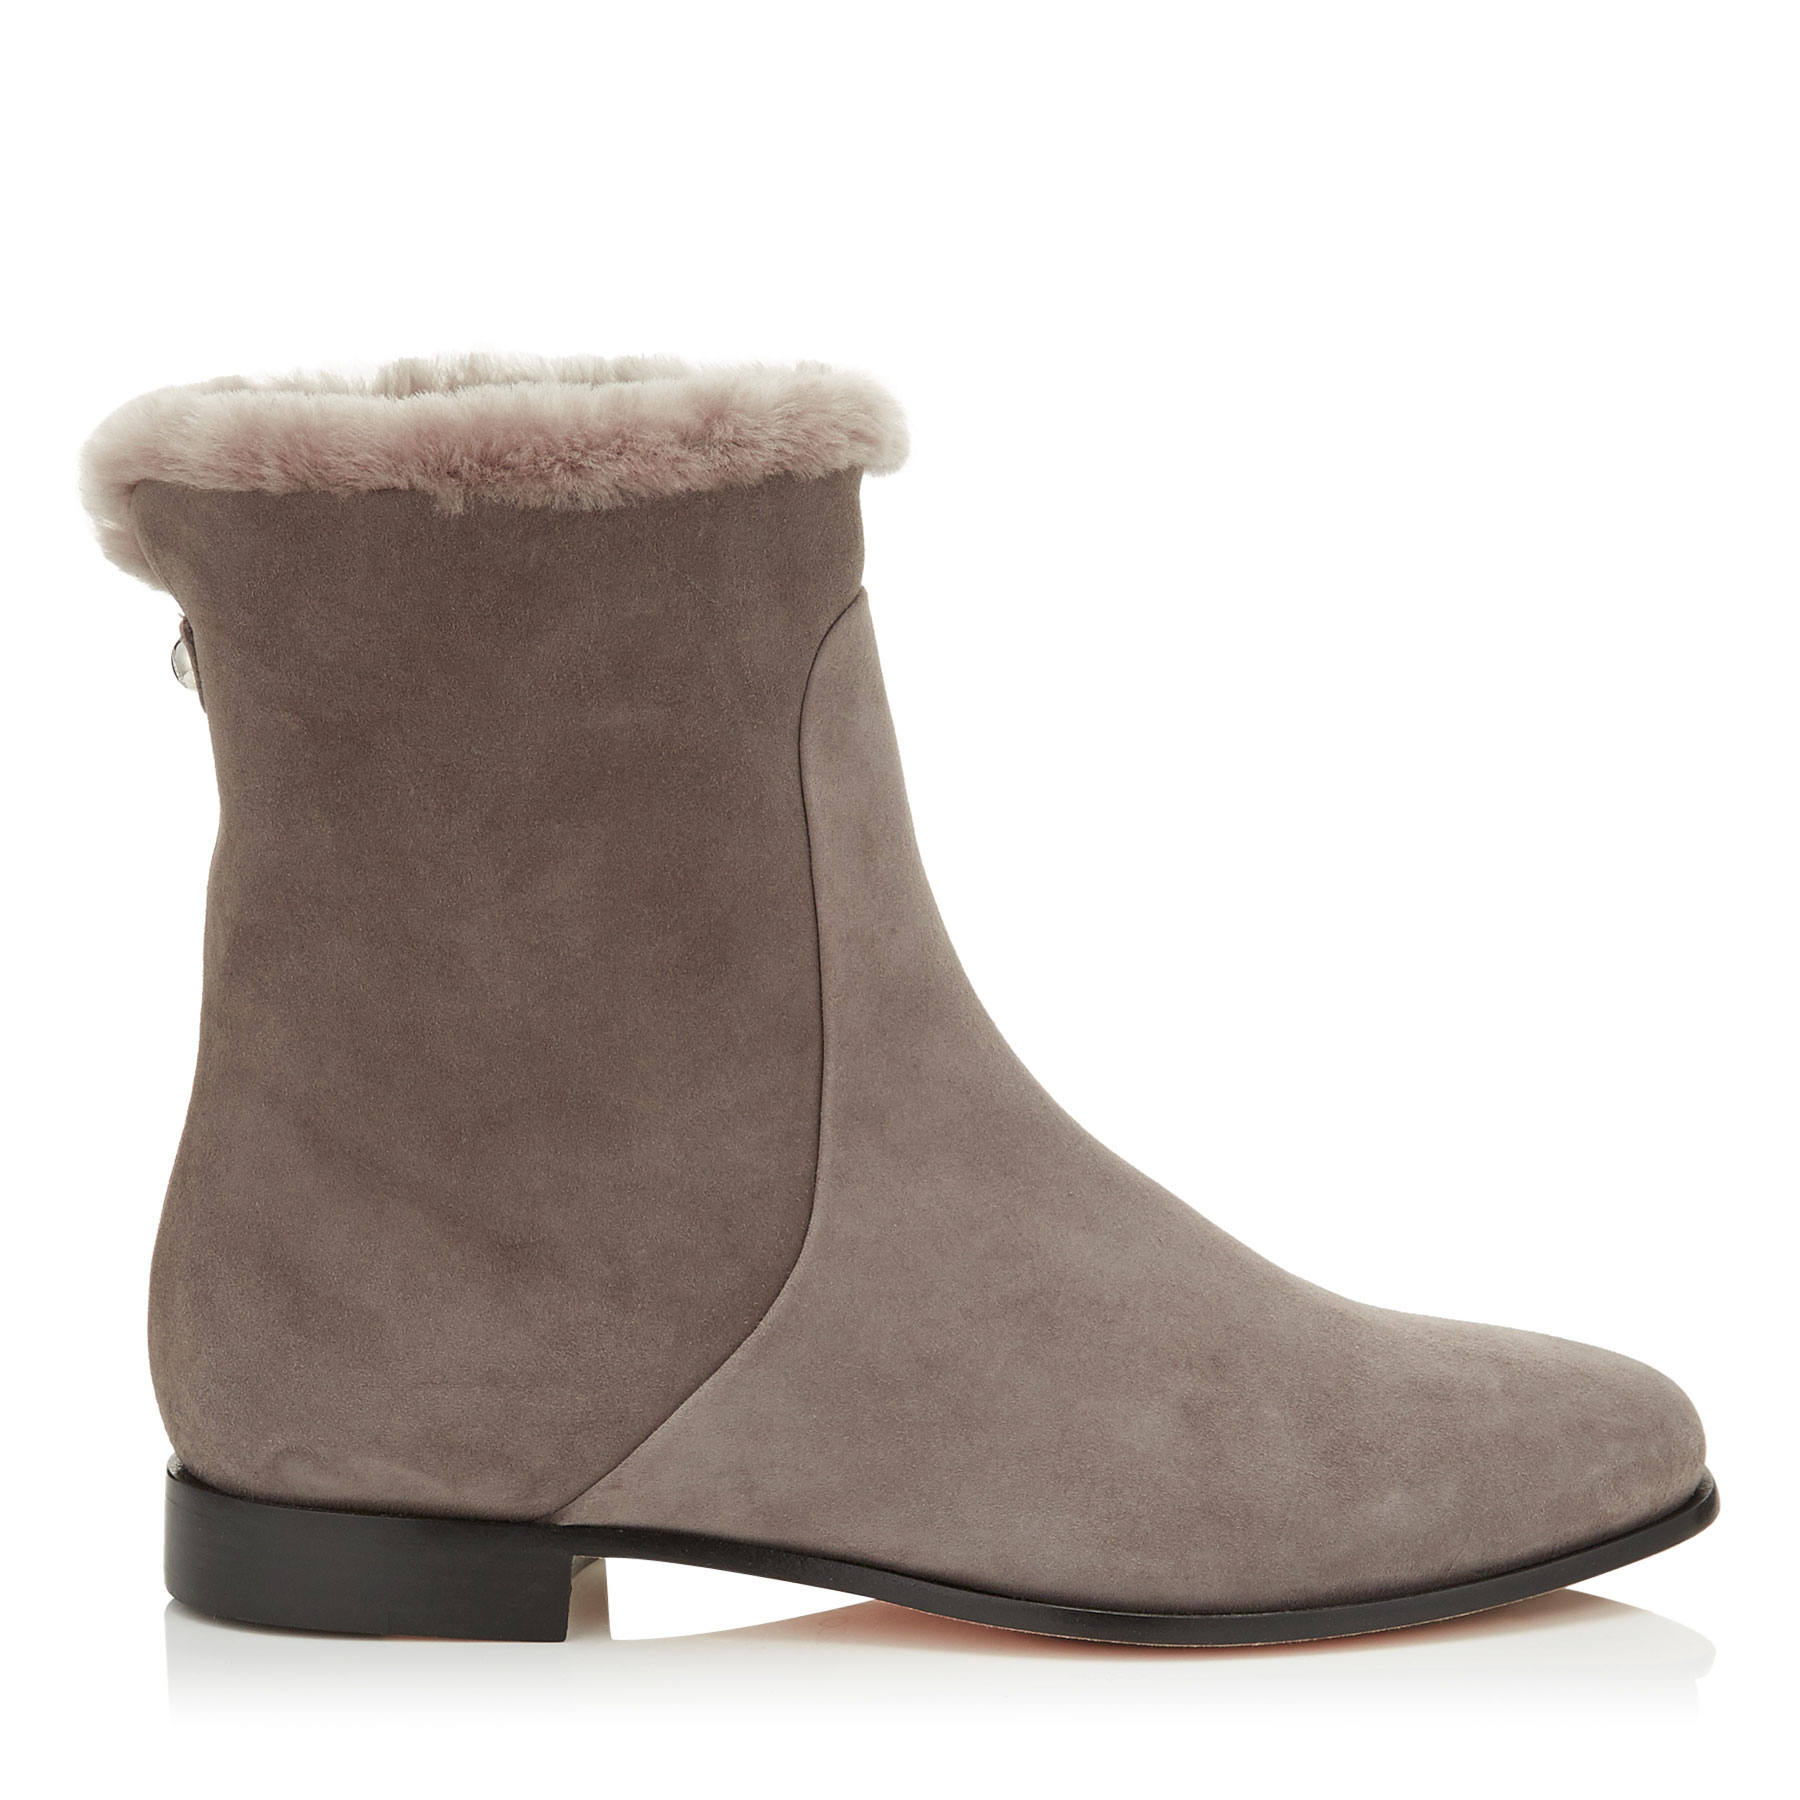 MISSION FLAT Taupe Grey Suede and Shearling Lined Ankle Boots